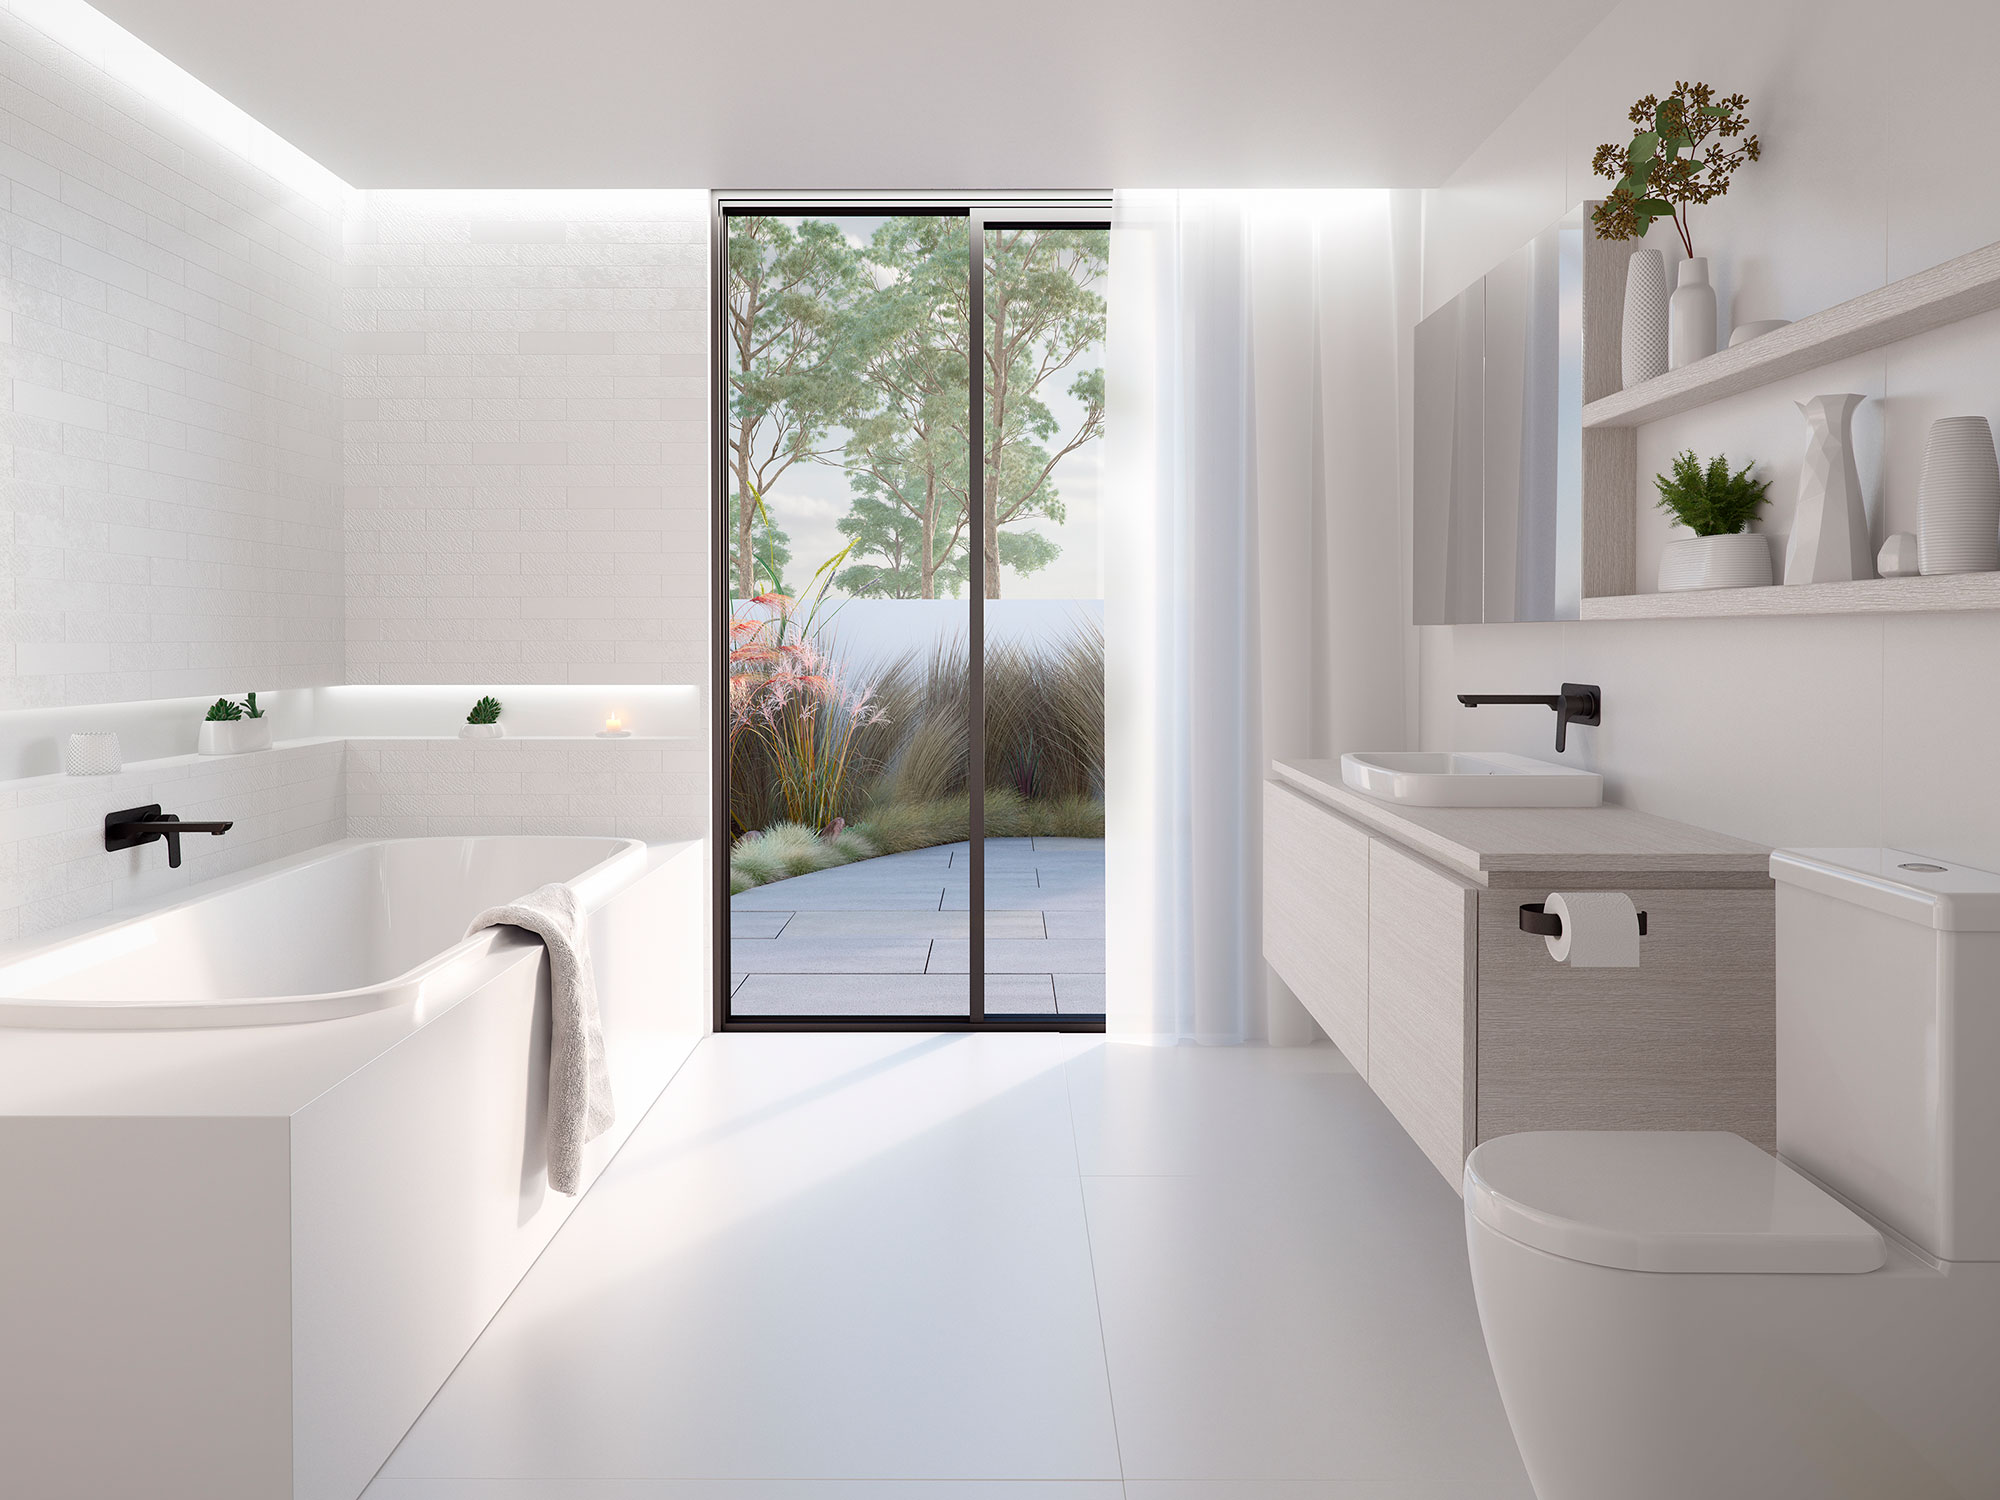 2019 Review: The Latest & Greatest in Bathroom Design on Small Bathroom Remodel Ideas 2019  id=52508